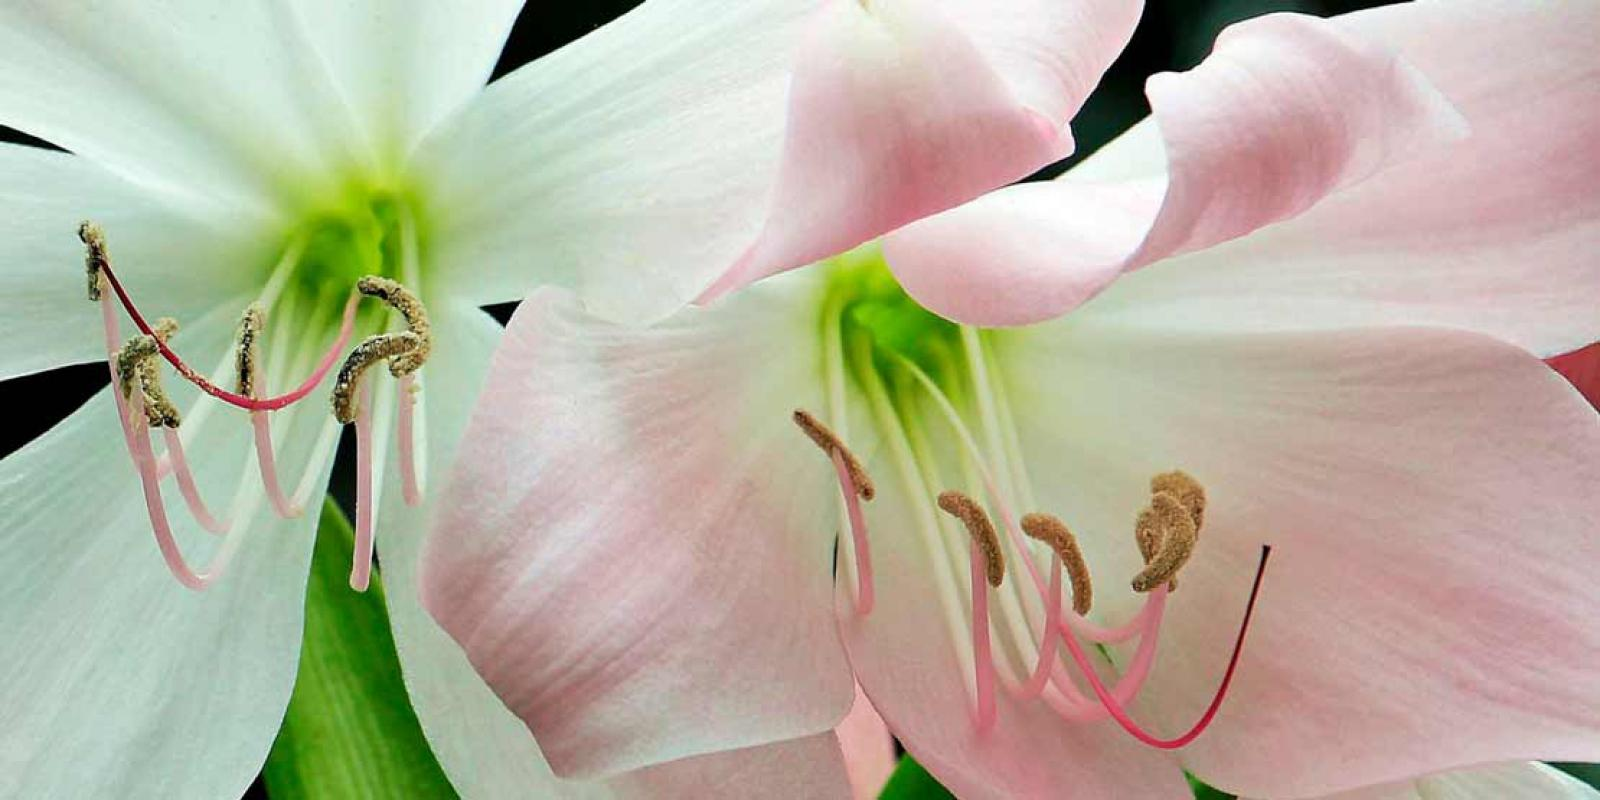 the most beautiful Amaryllis from Kwekerij Gebr. van der Velden